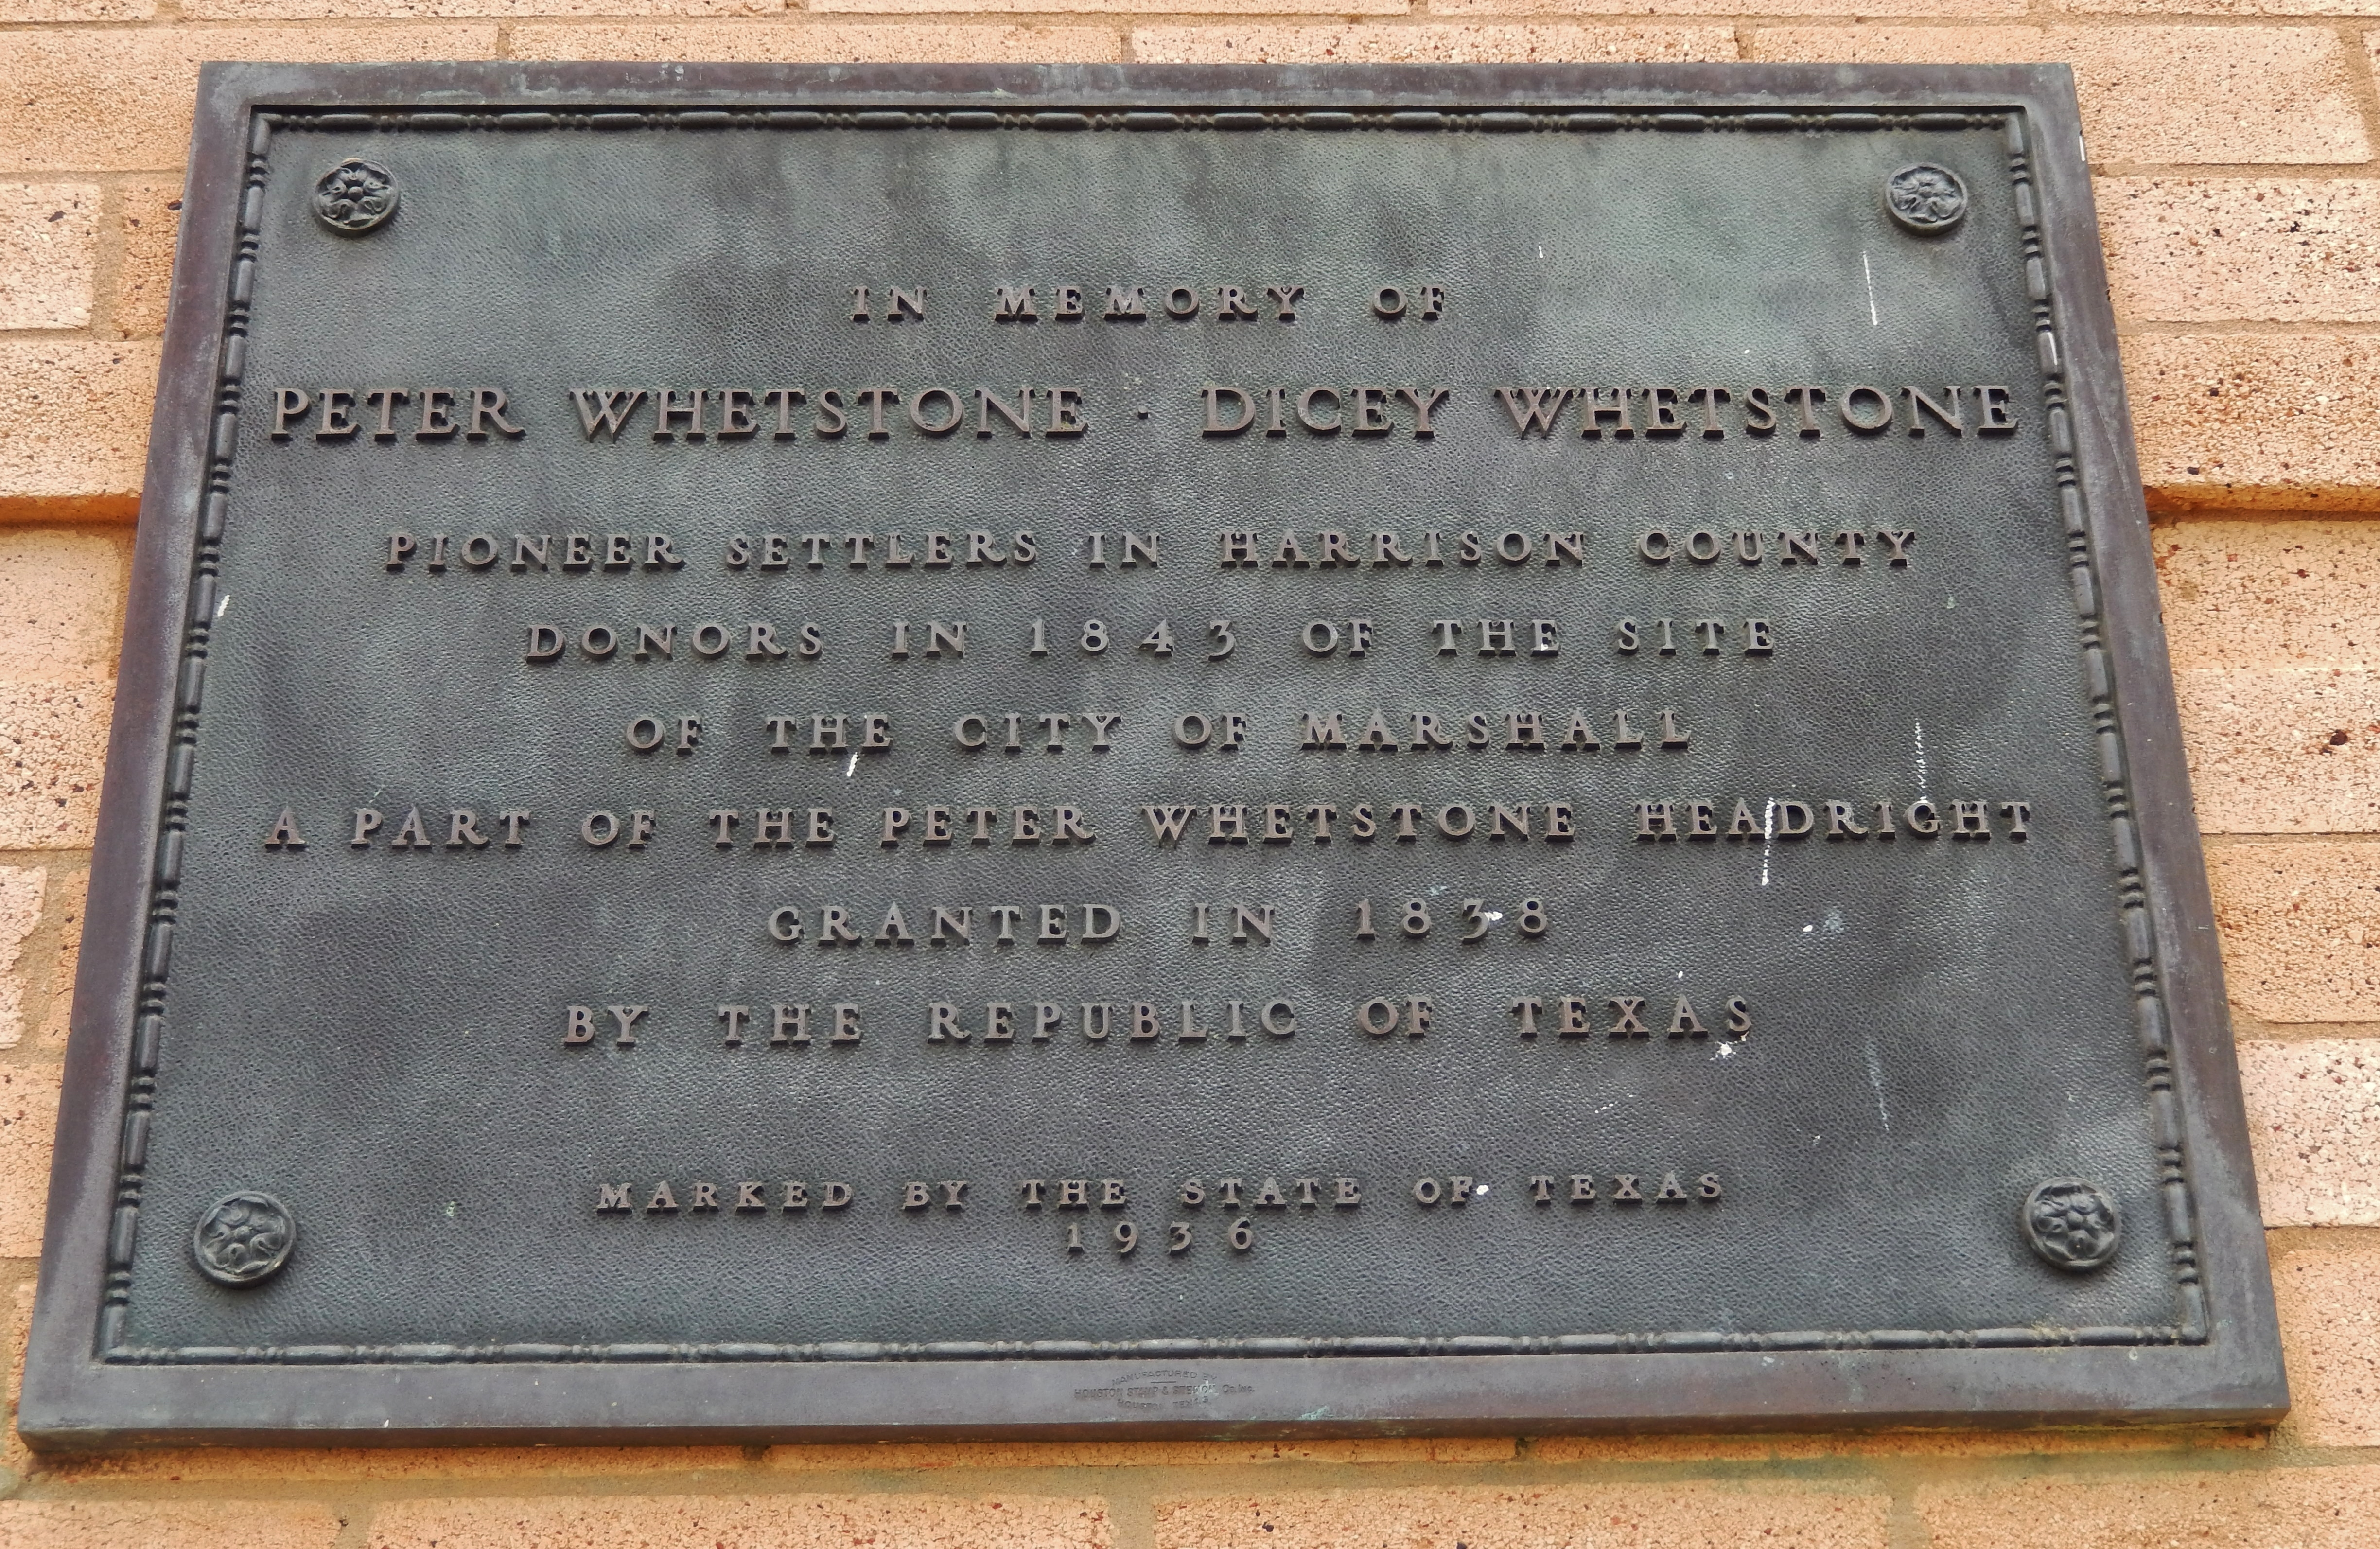 Whetstone Memorial Tablet (<i>mounted on courthouse wall behind marker</i>)